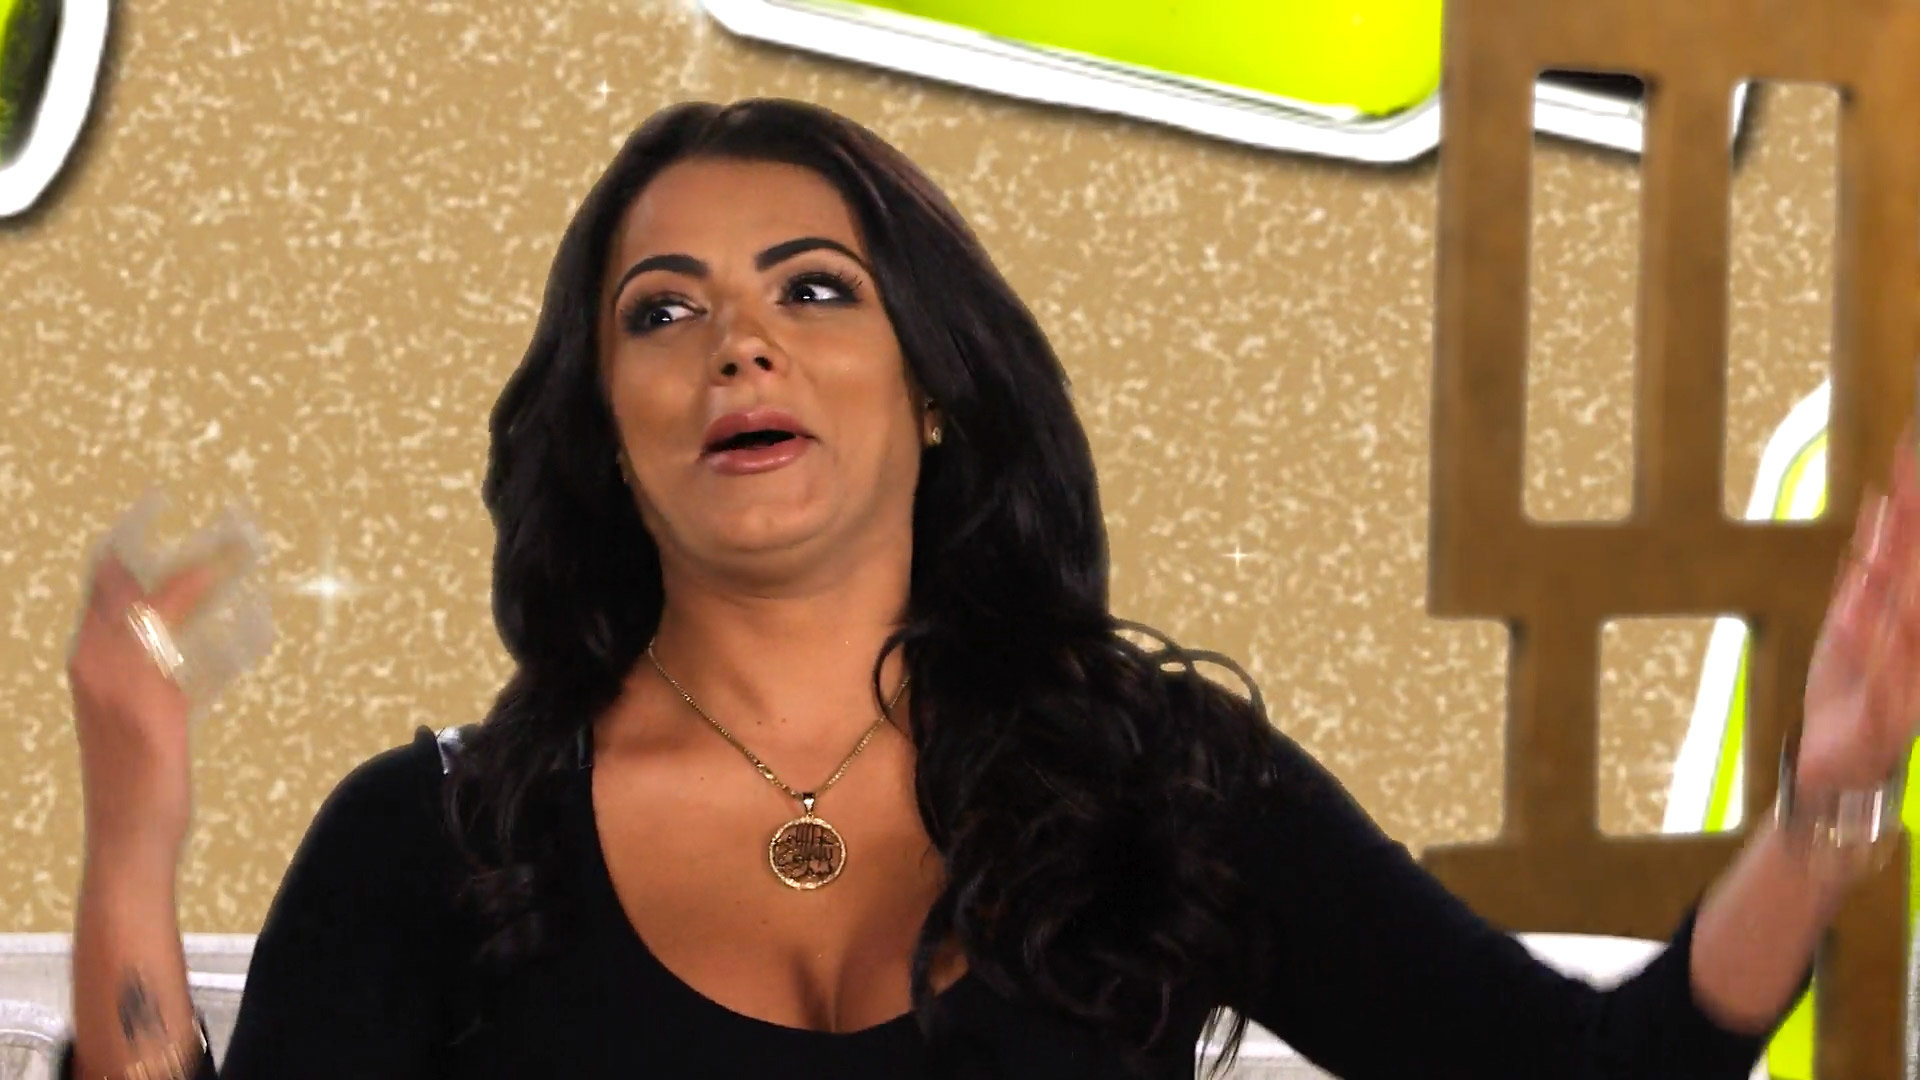 Shahs After Show: There Was Almost an Orgy in Israel?!